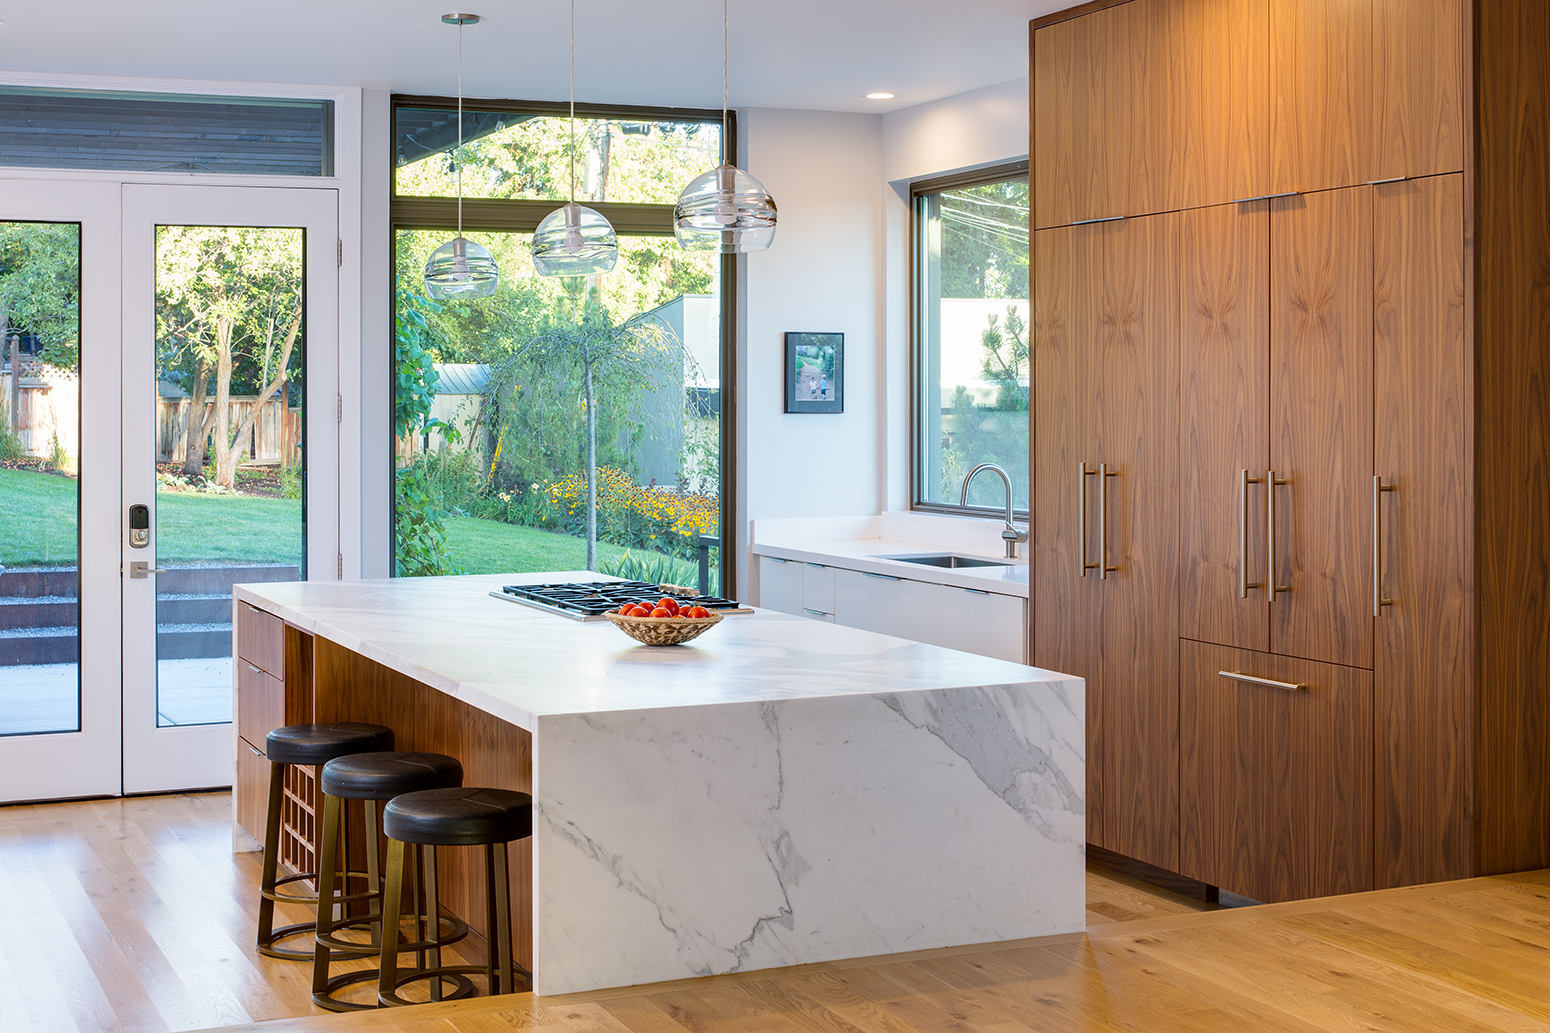 This is a photograph of a kitchen in a modern home with a large marble island with a bowl of red timatos on it.. Through the windows and doors the viewer sees the spacious, green back yard.